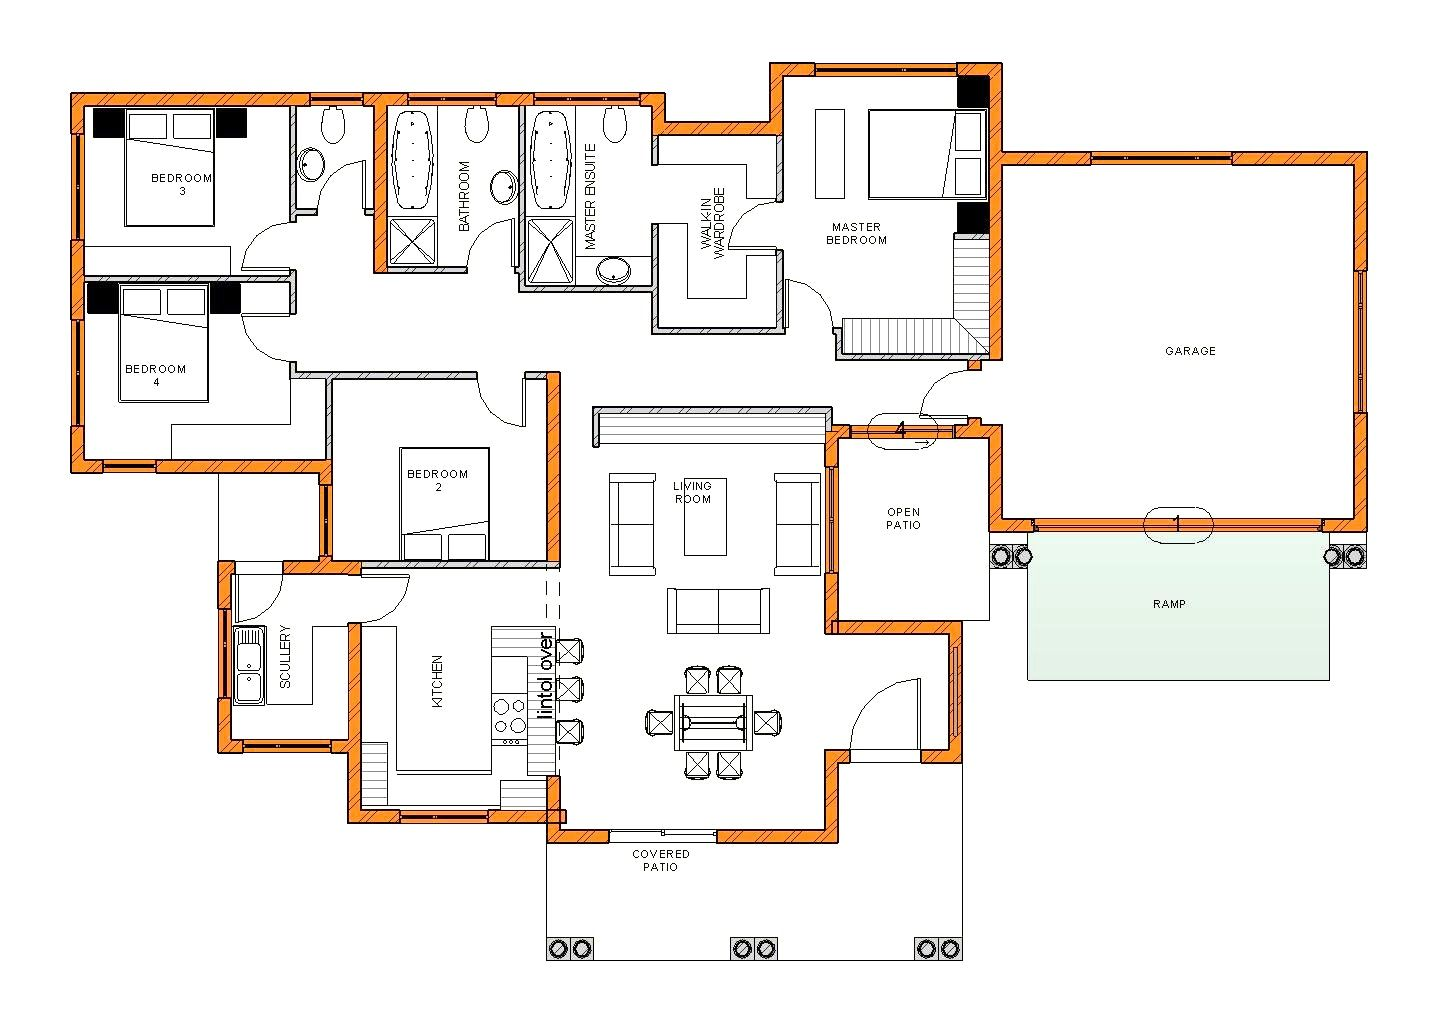 Modern 4 bedroom house plans south africa stunning tuscan - Single story four bedroom house plans ...